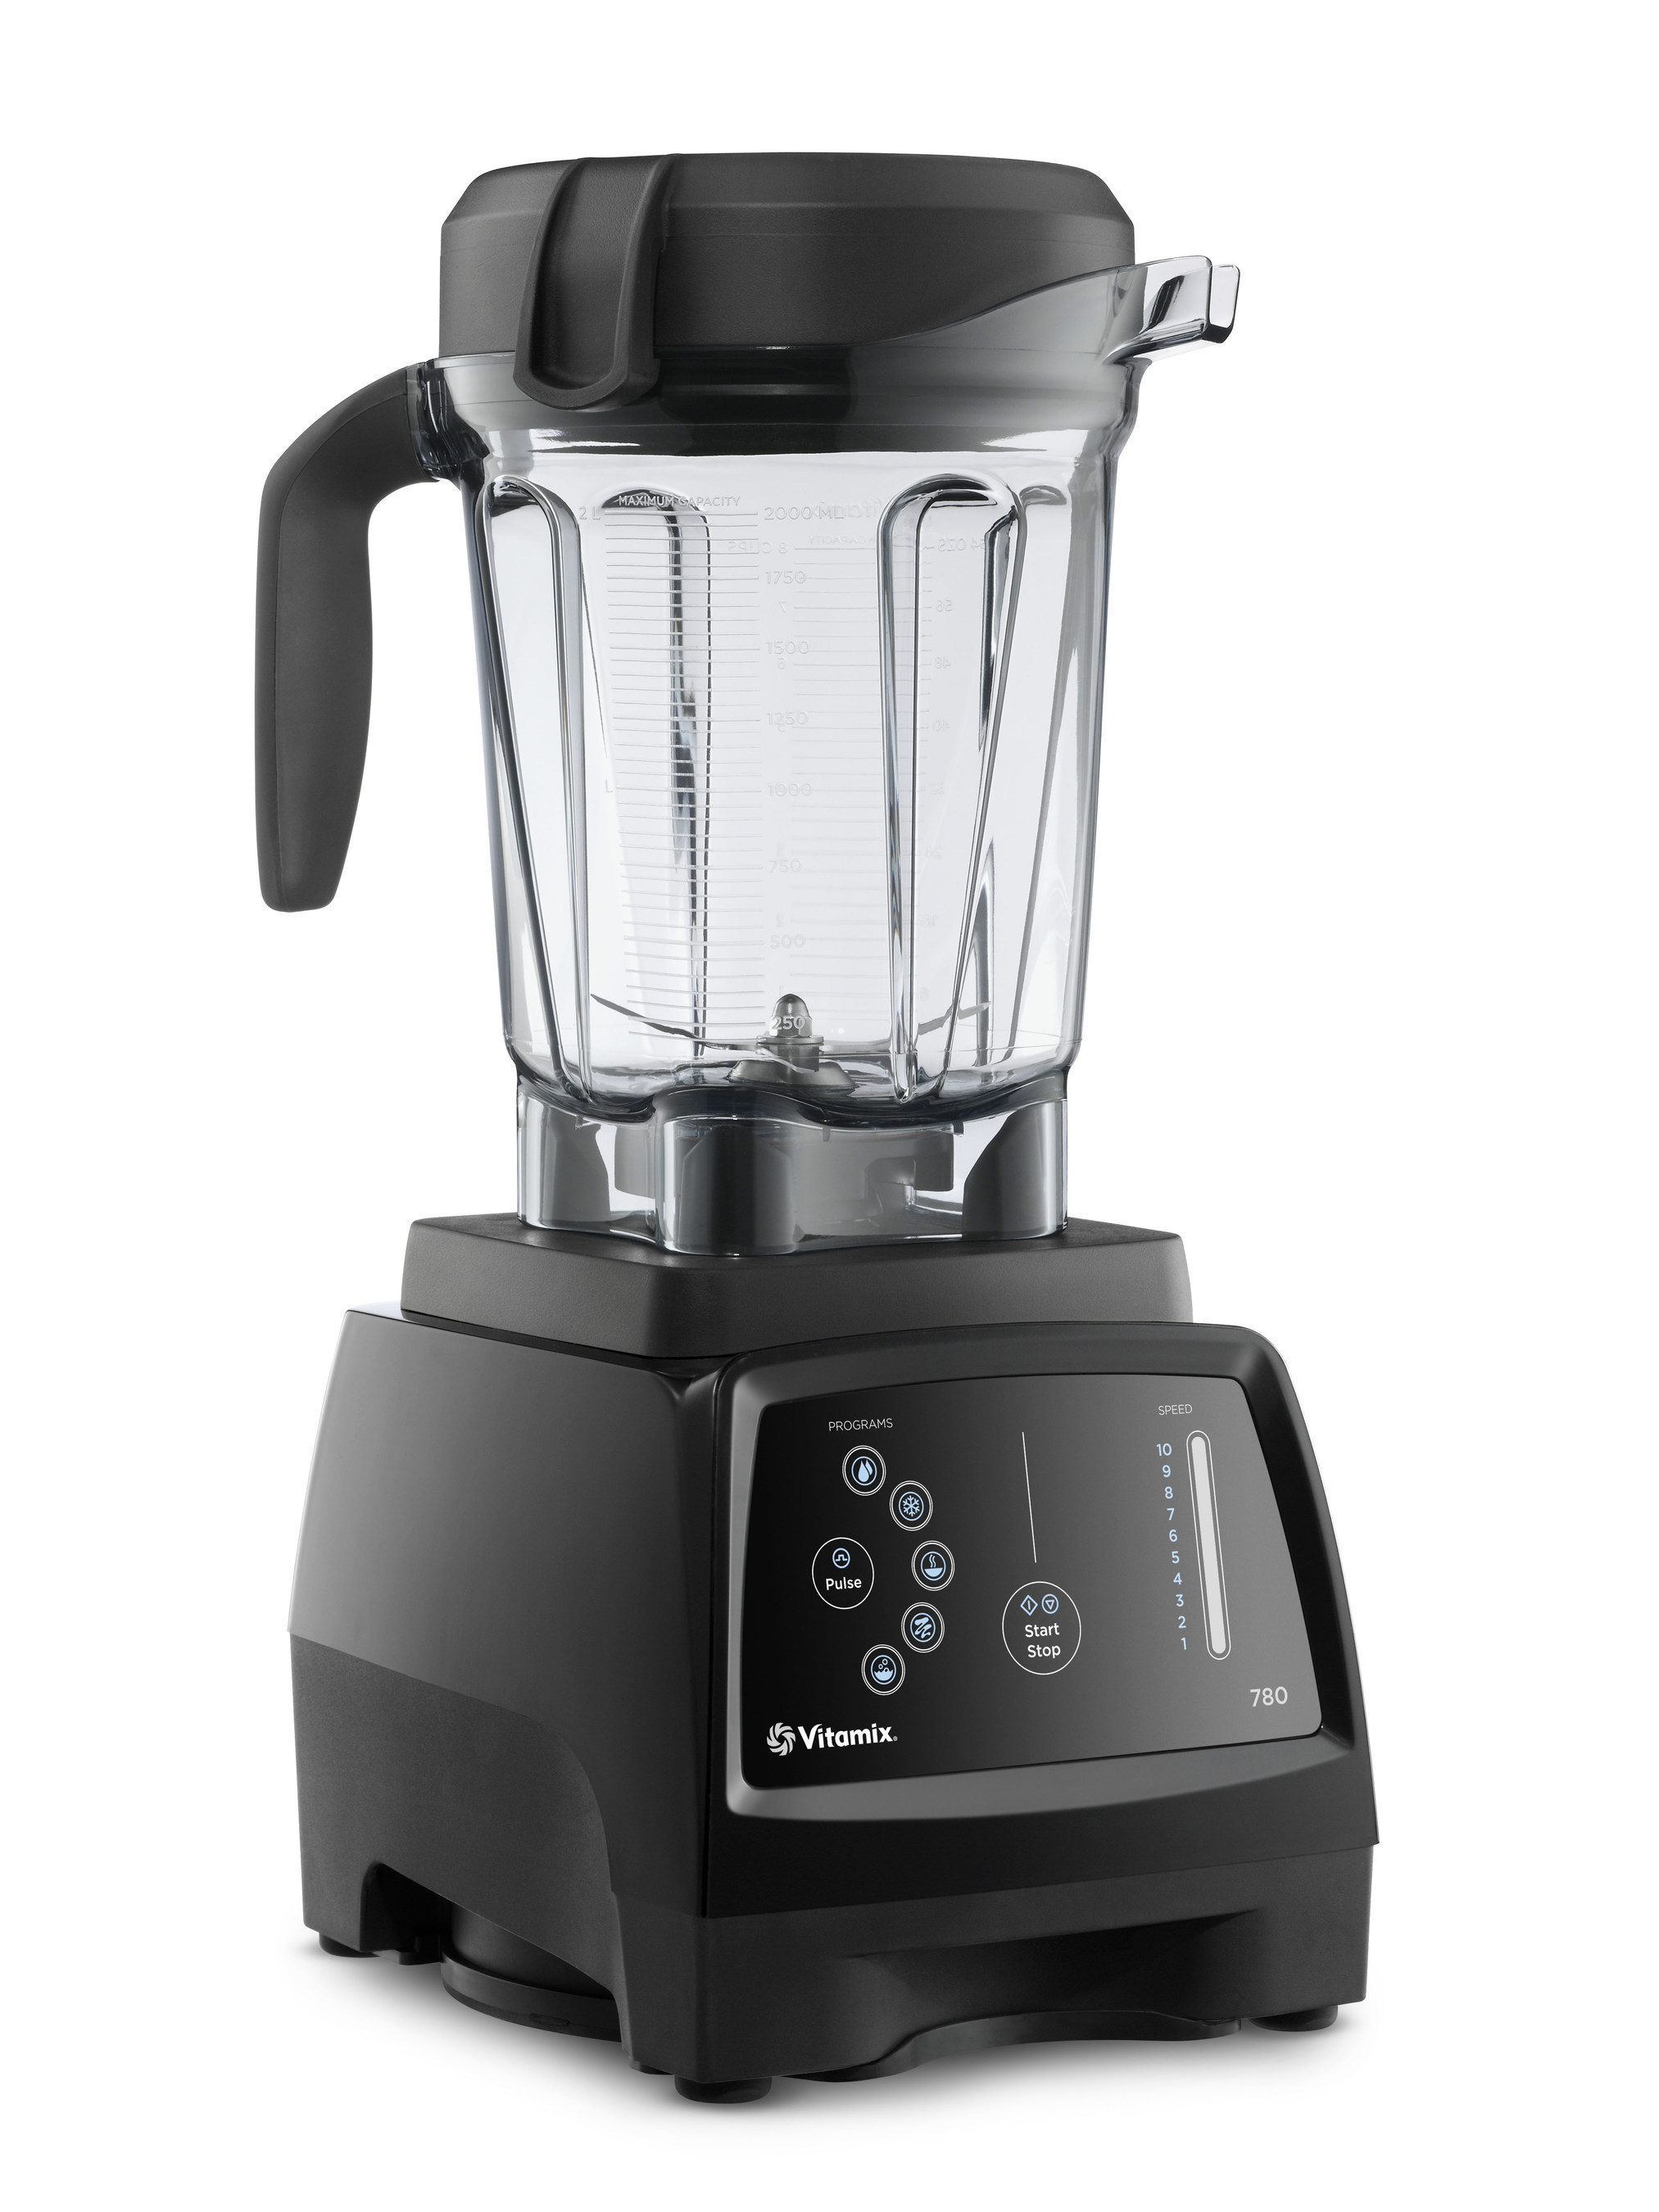 Vitamix(R) introduces the 780 - the sleekest, most streamlined Vitamix machine to date.